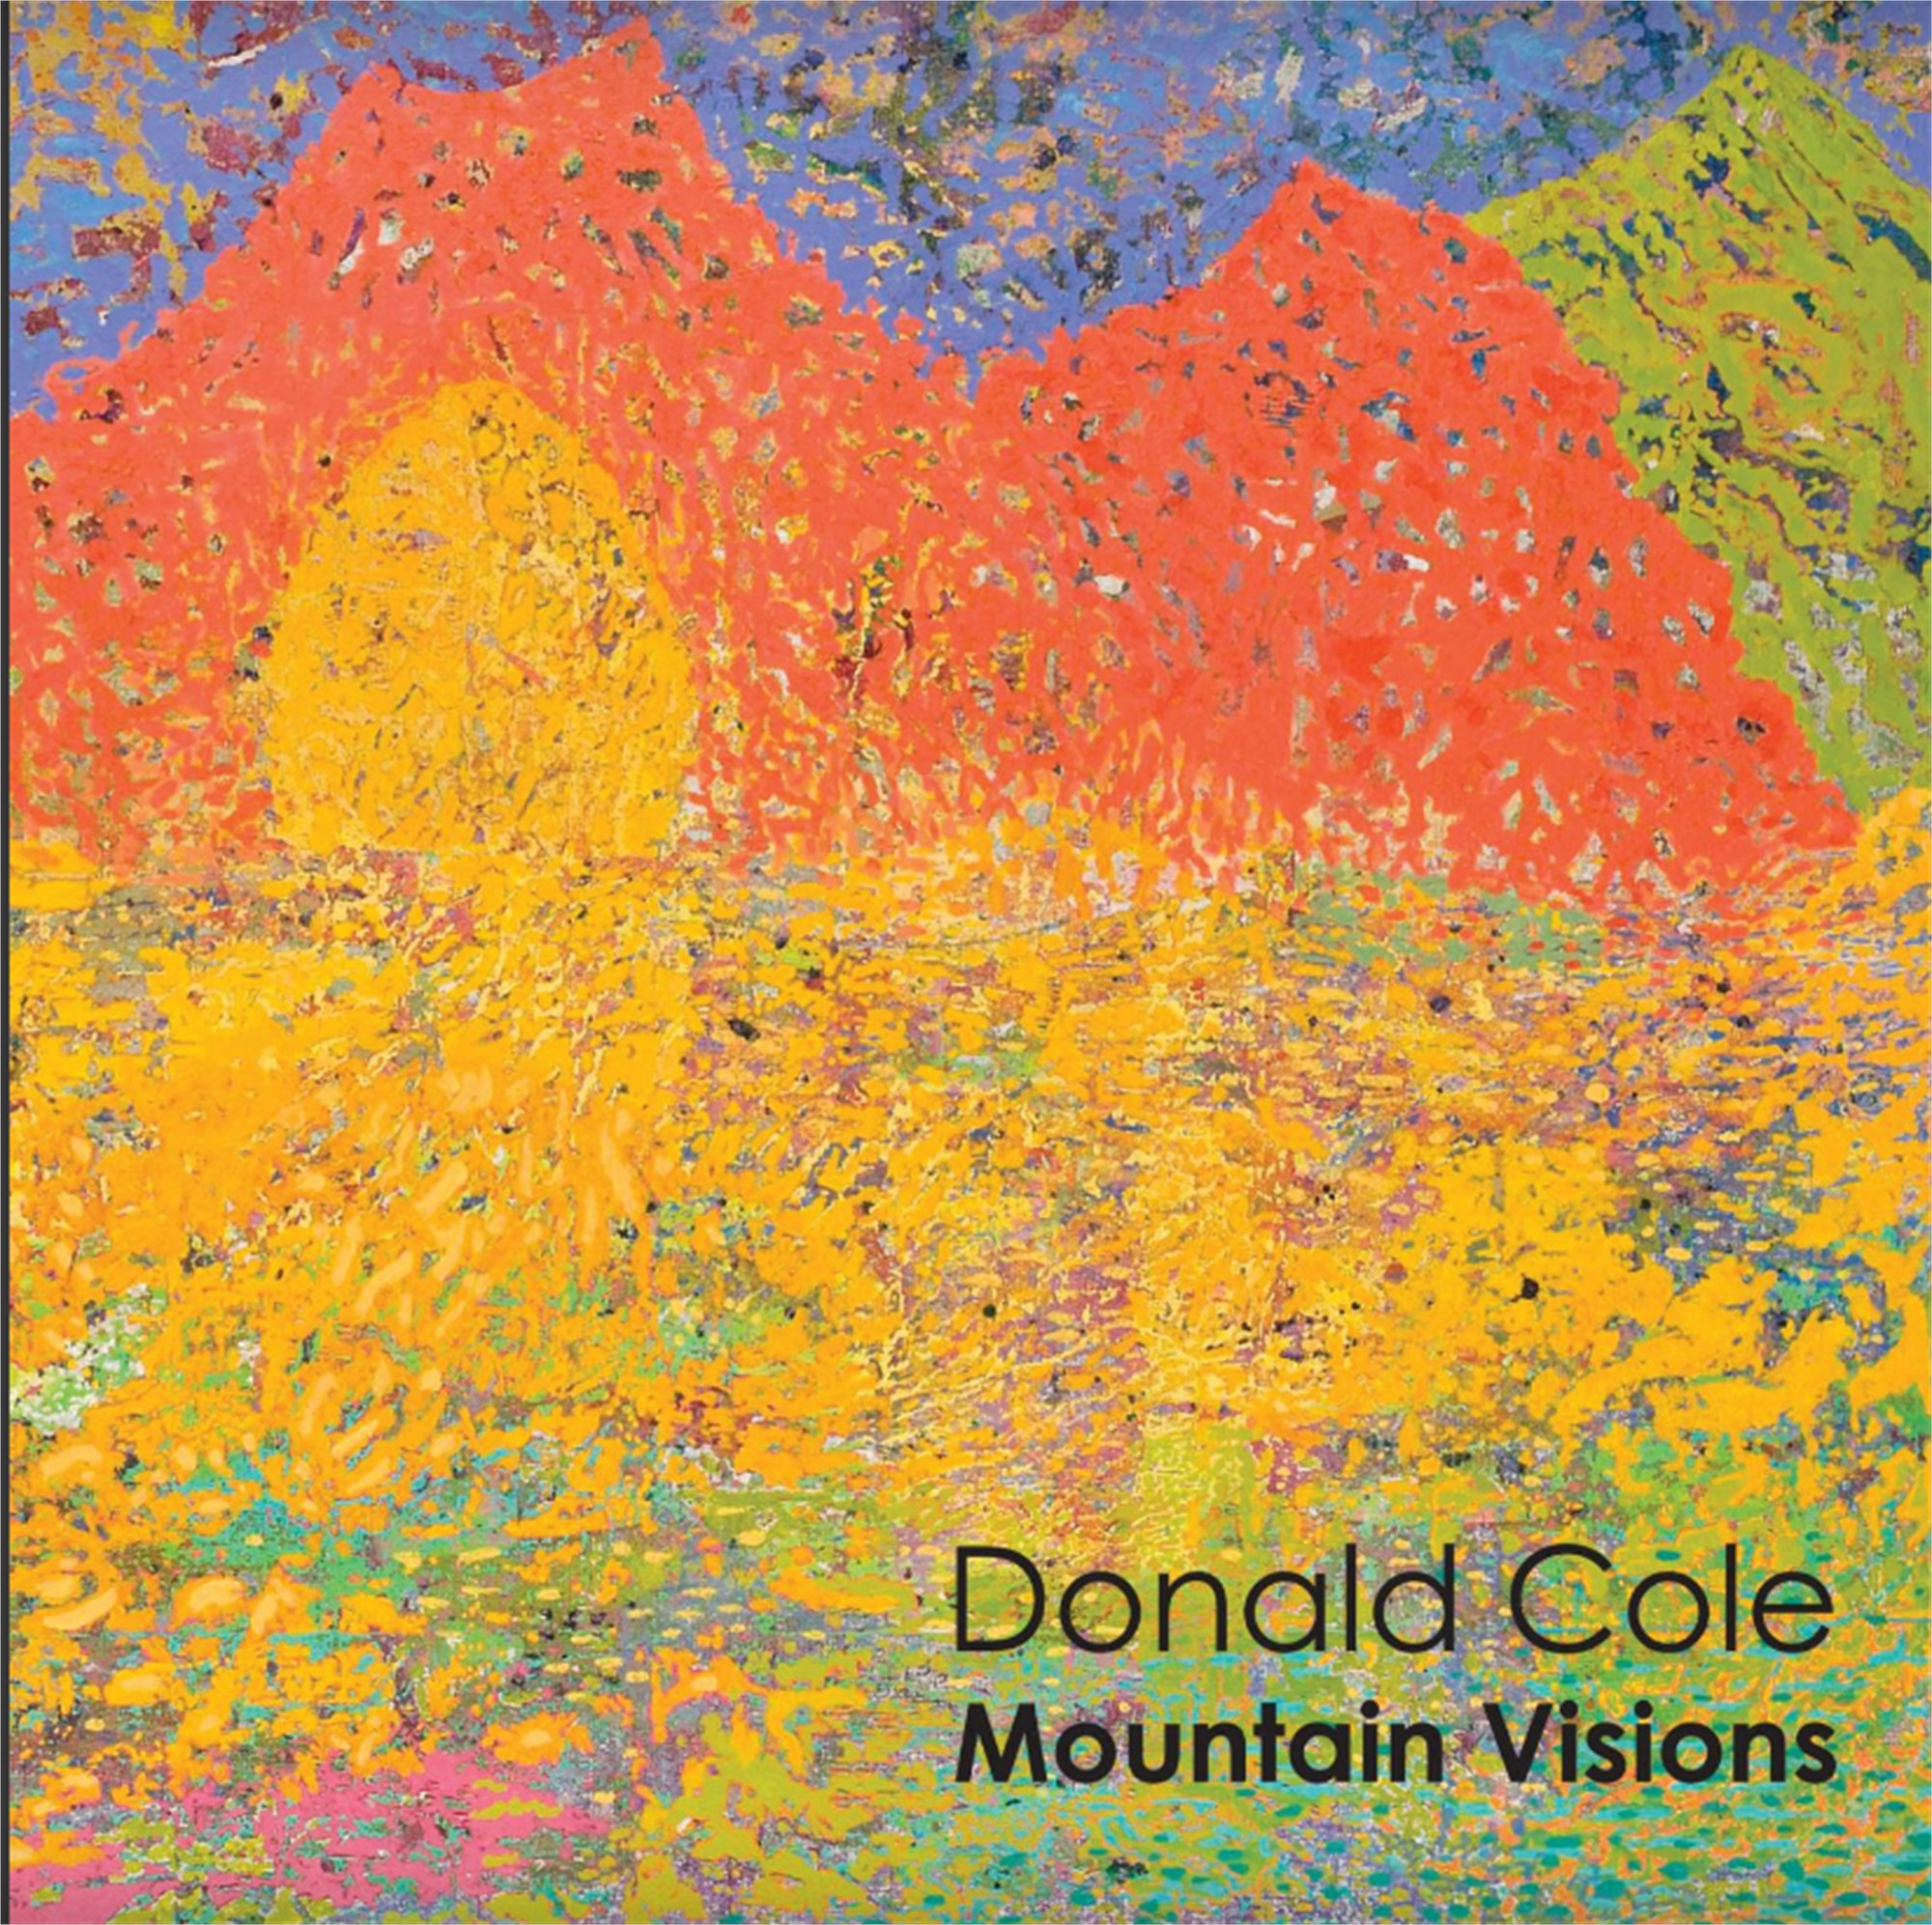 Mountain Visions | exhibition catalog by Donald Cole